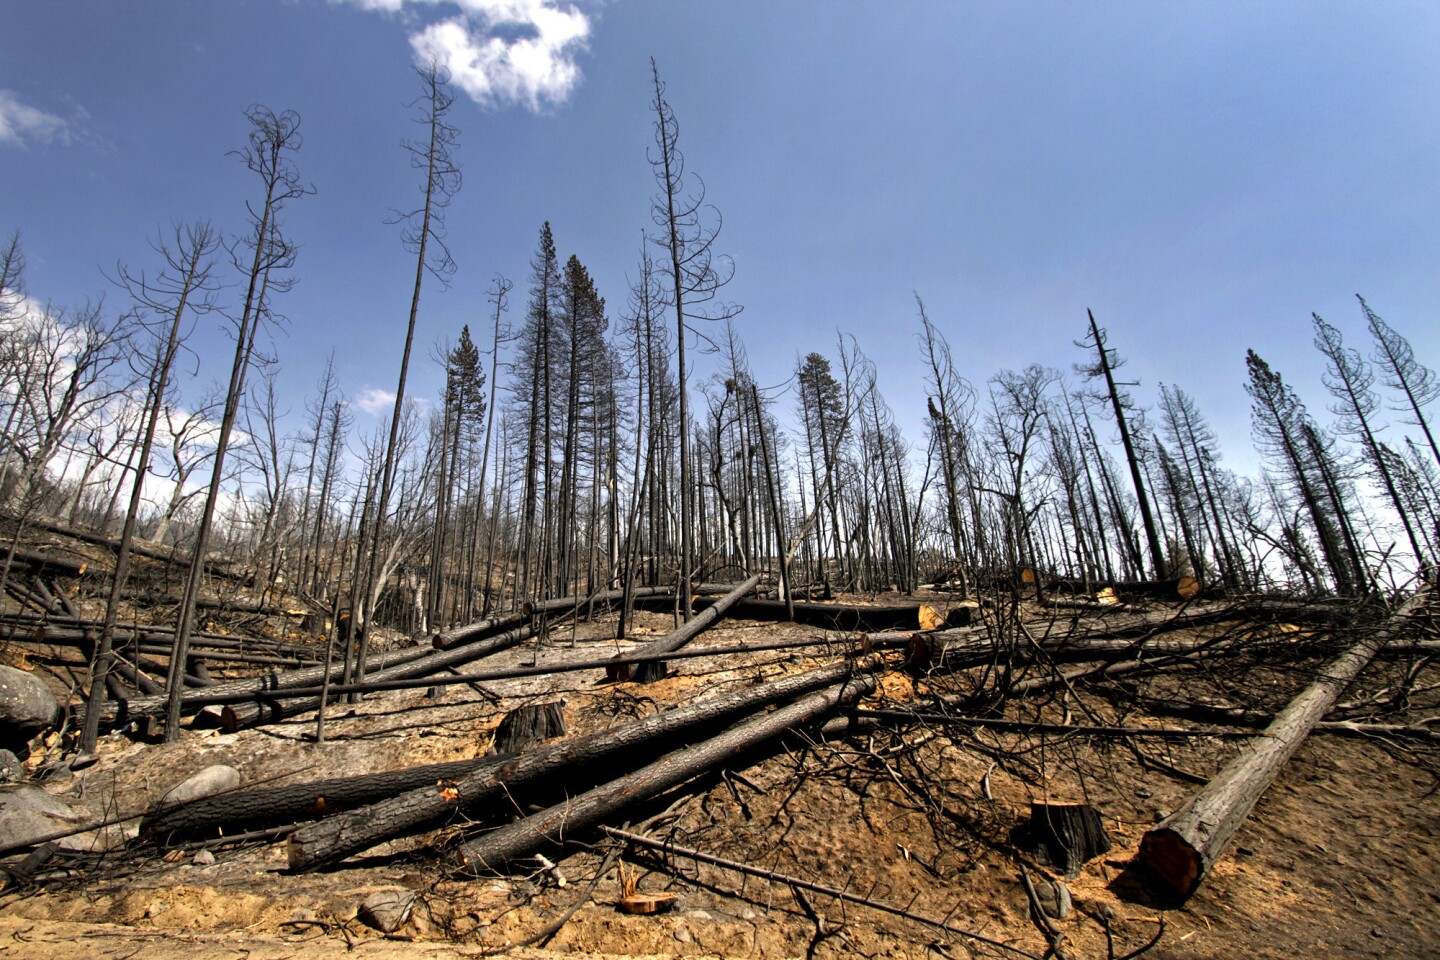 A view of the burned area near Granite Creek in the Stanislaus National Forest.